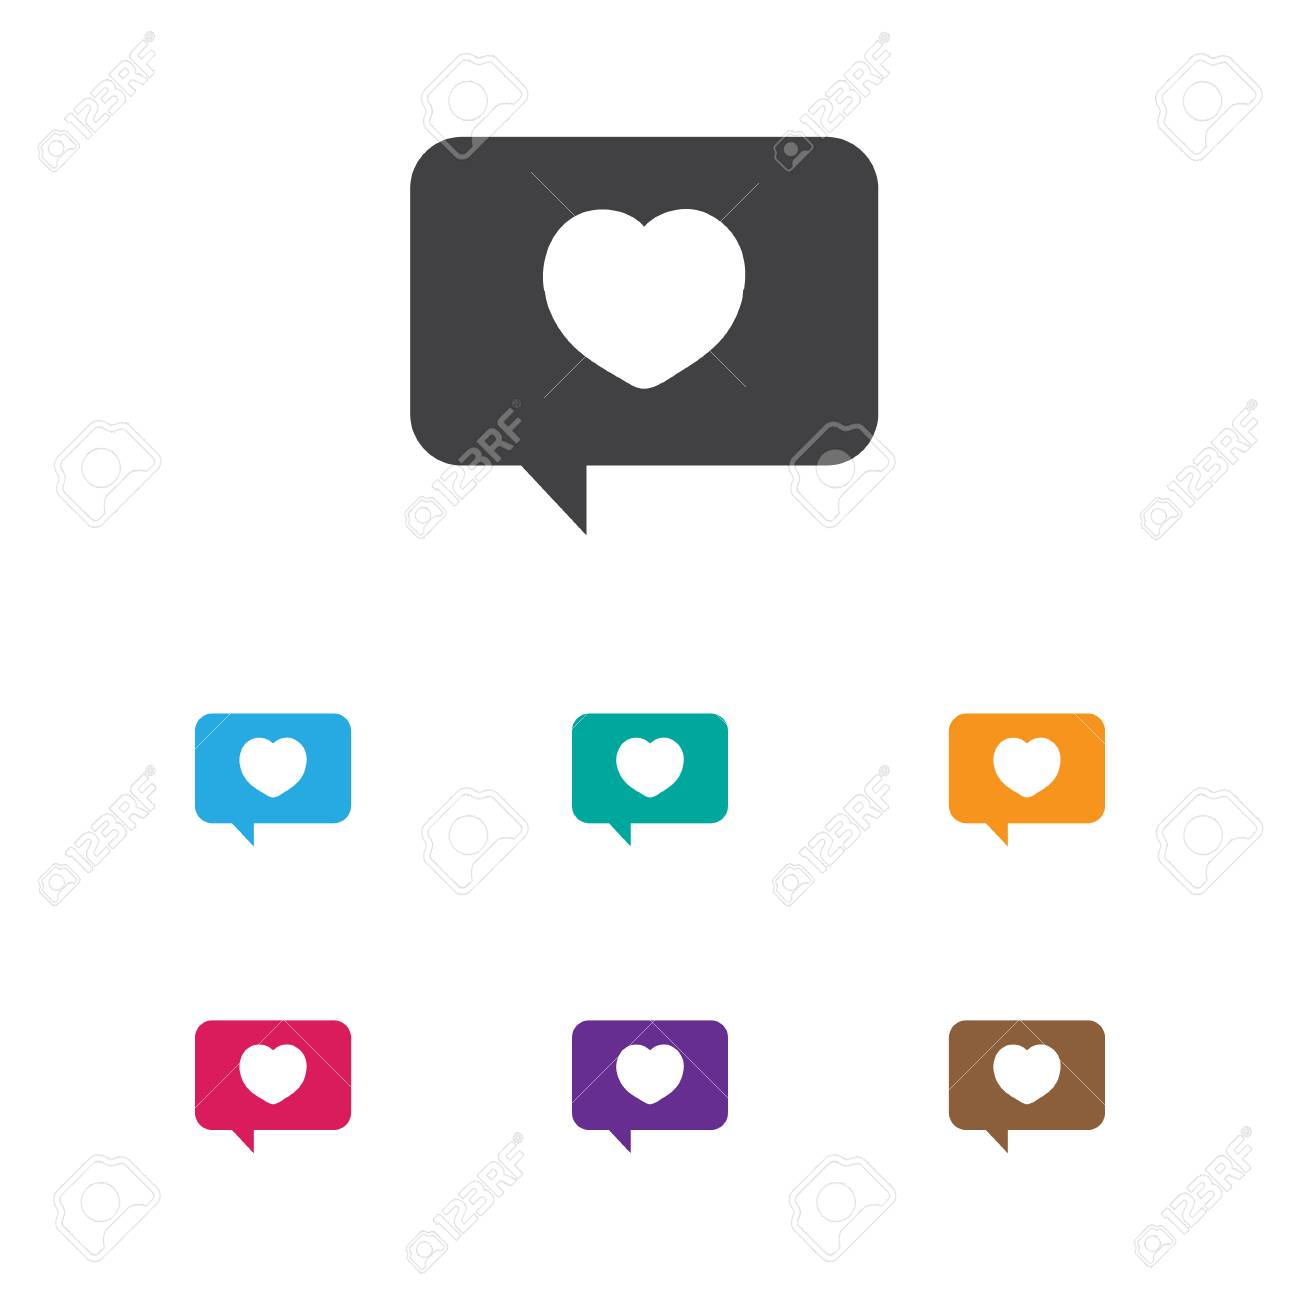 Vector Illustration Of Passion Symbol On Affection Mail Icon Royalty